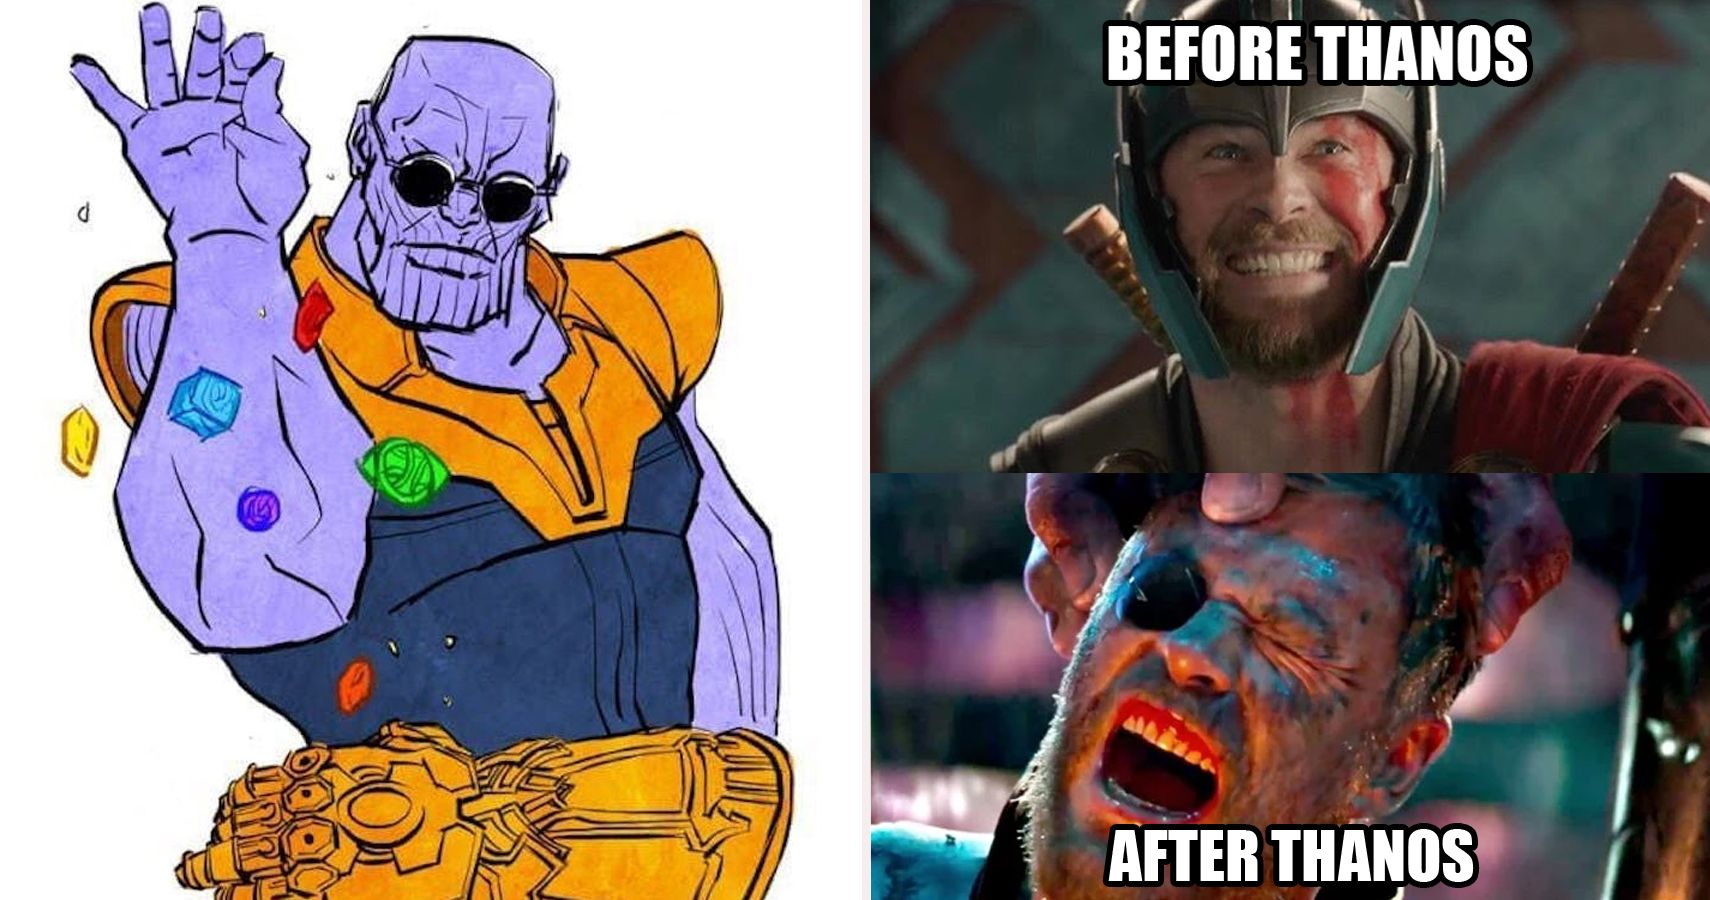 25 Hilarious Thanos Memes Only Marvel Fans Will Understand